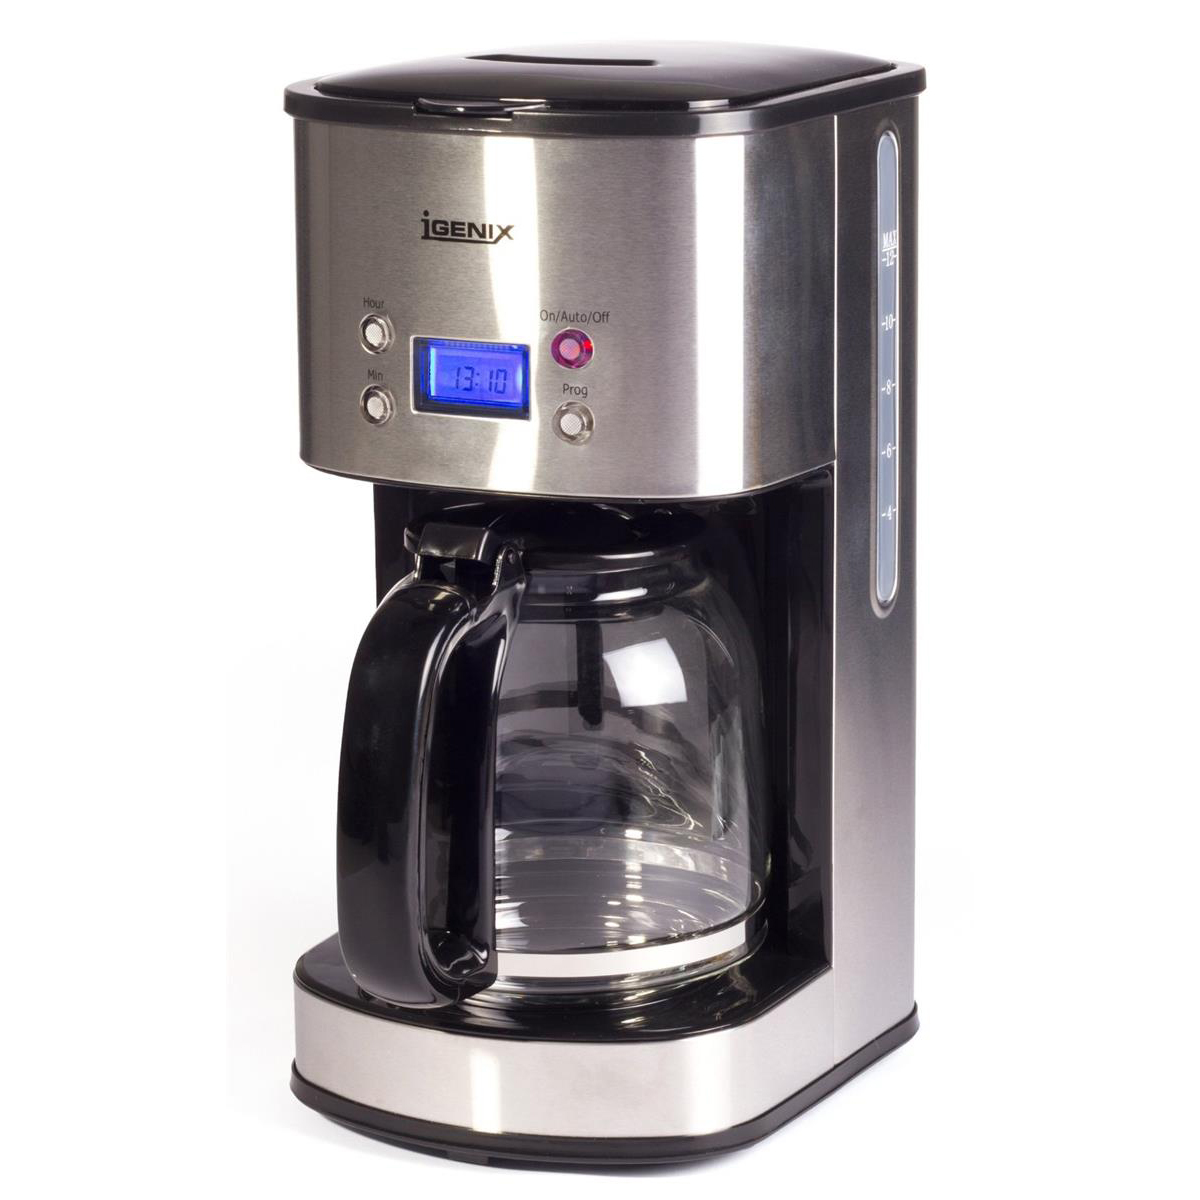 Igenix Digital Coffee Maker LCD Display Keep Warm 1.5L 10 Cup Capacity Stainless Steel Ref IG 8250